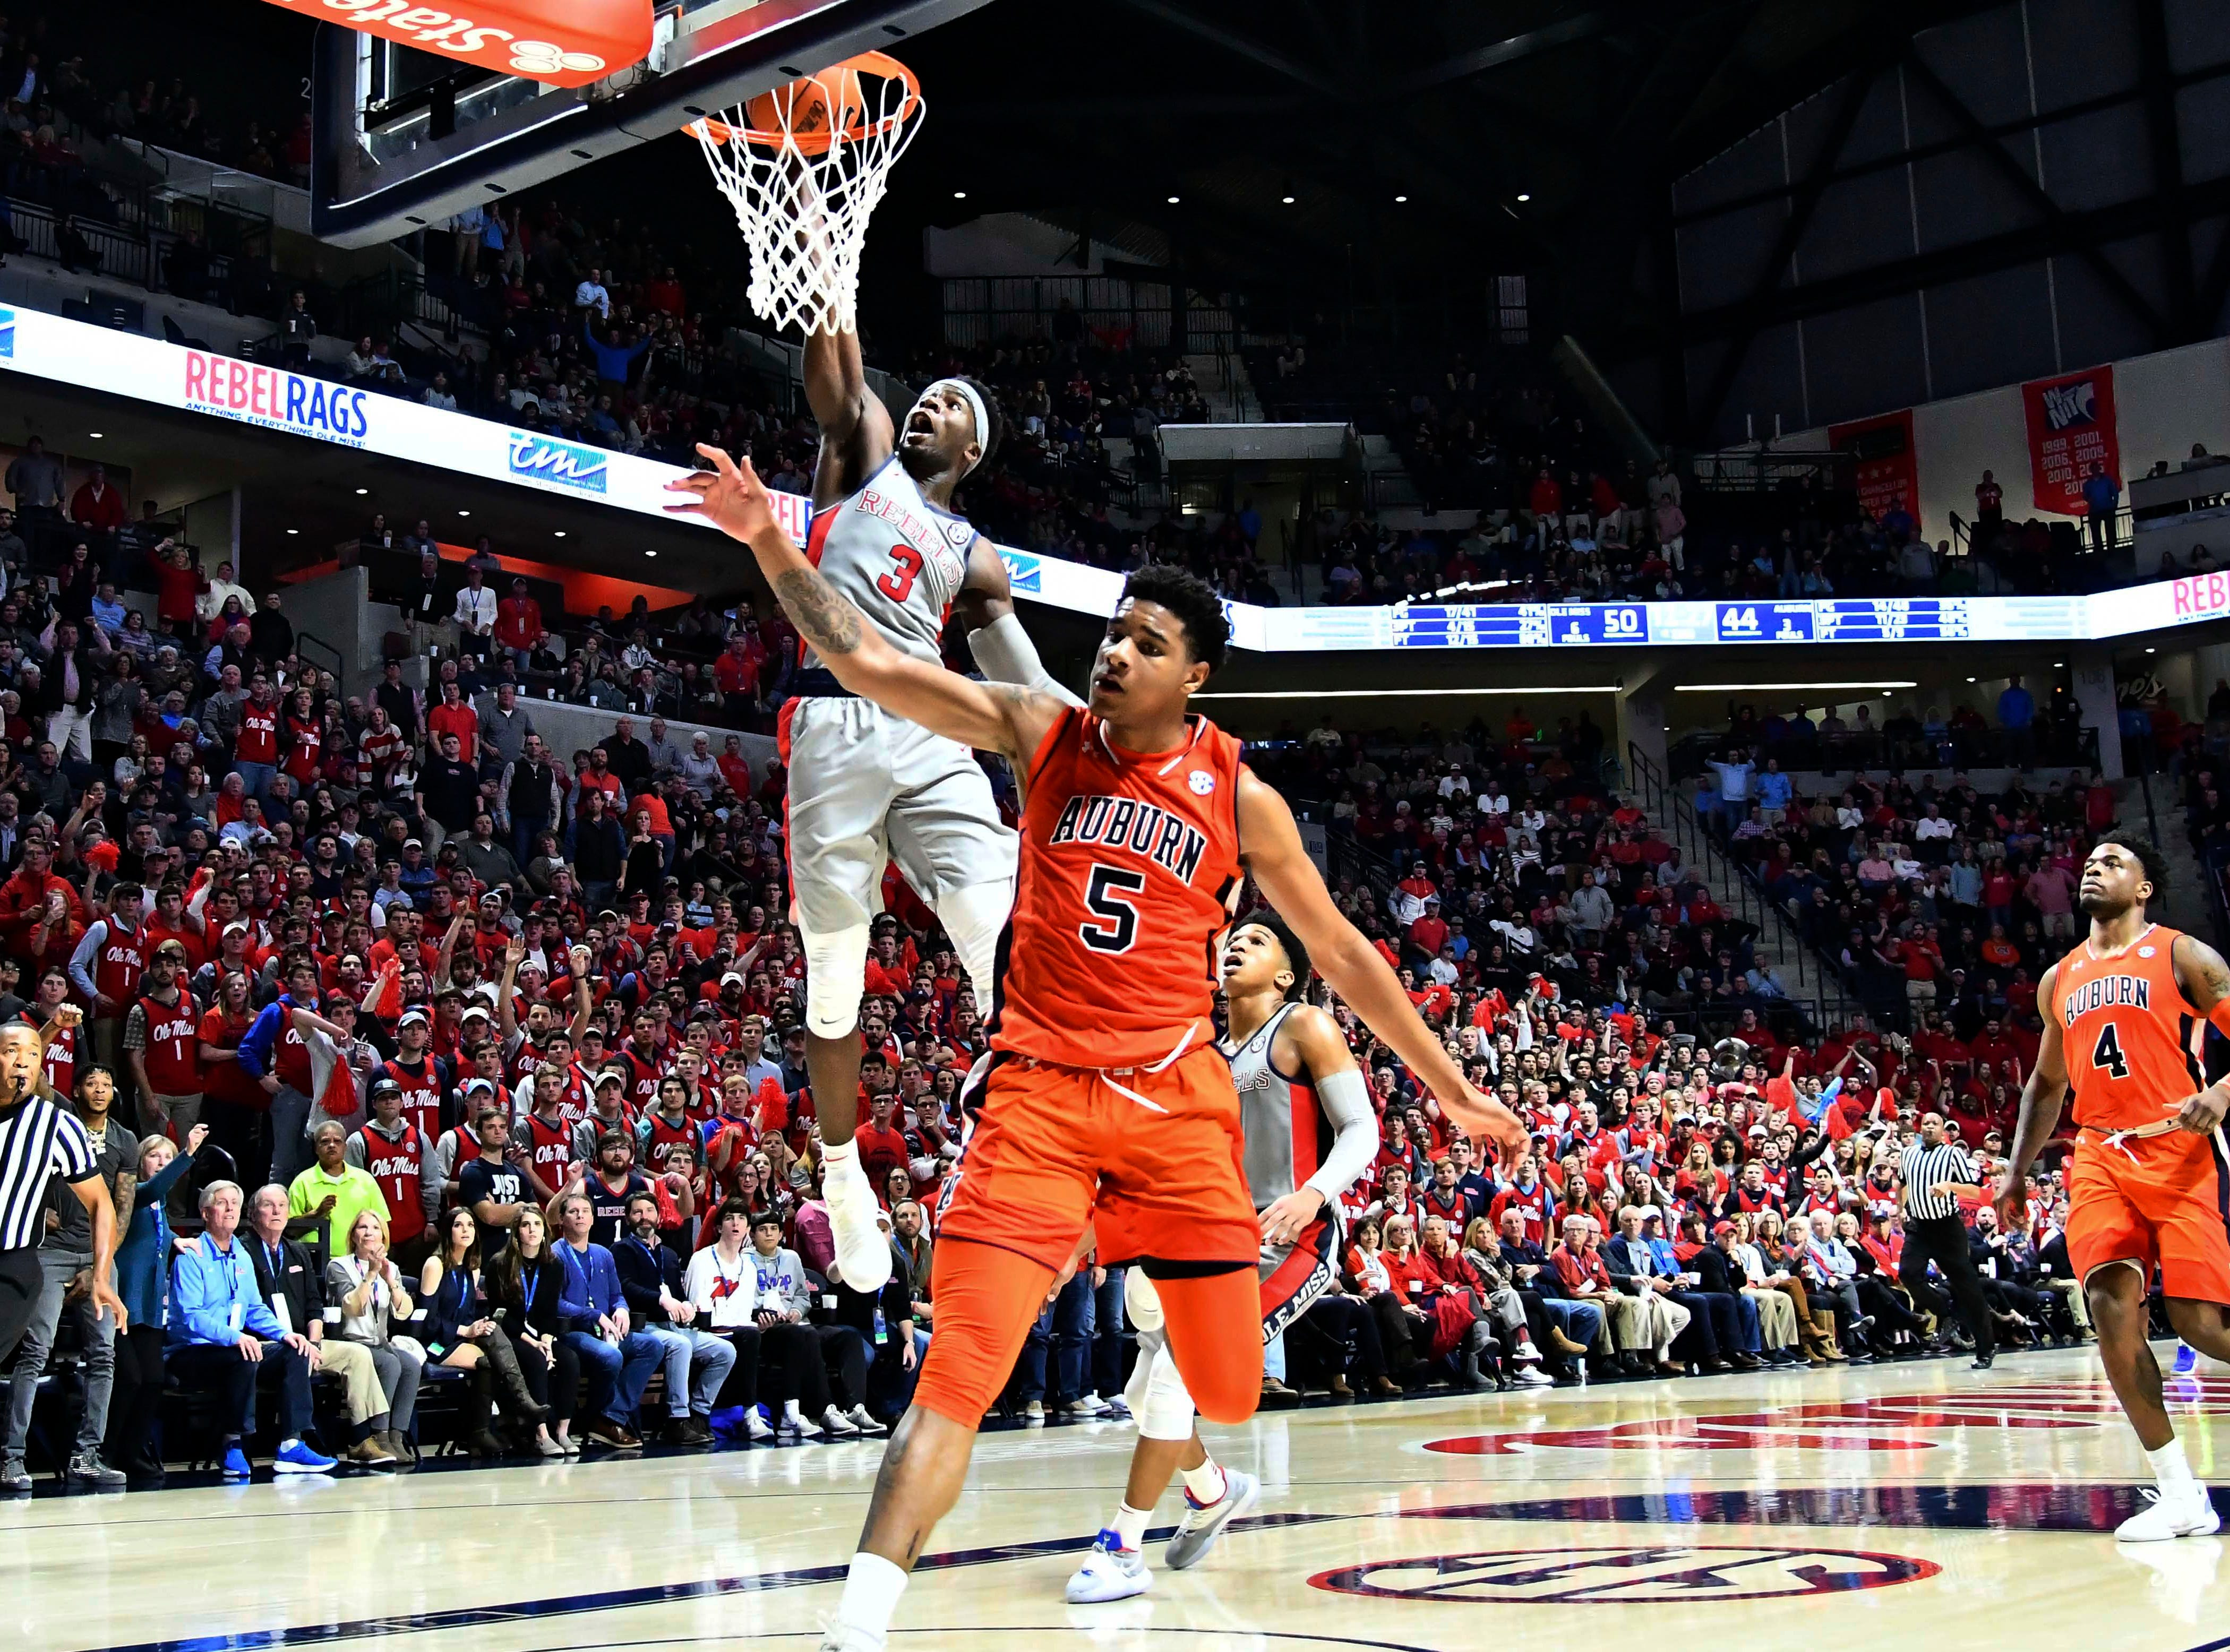 Jan 9, 2019; Oxford, MS, USA; Mississippi Rebels guard Terence Davis (3) goes up for a dunk defended by Auburn Tigers forward Chuma Okeke (5) during the second half at The Pavilion at Ole Miss. Mandatory Credit: Matt Bush-USA TODAY Sports